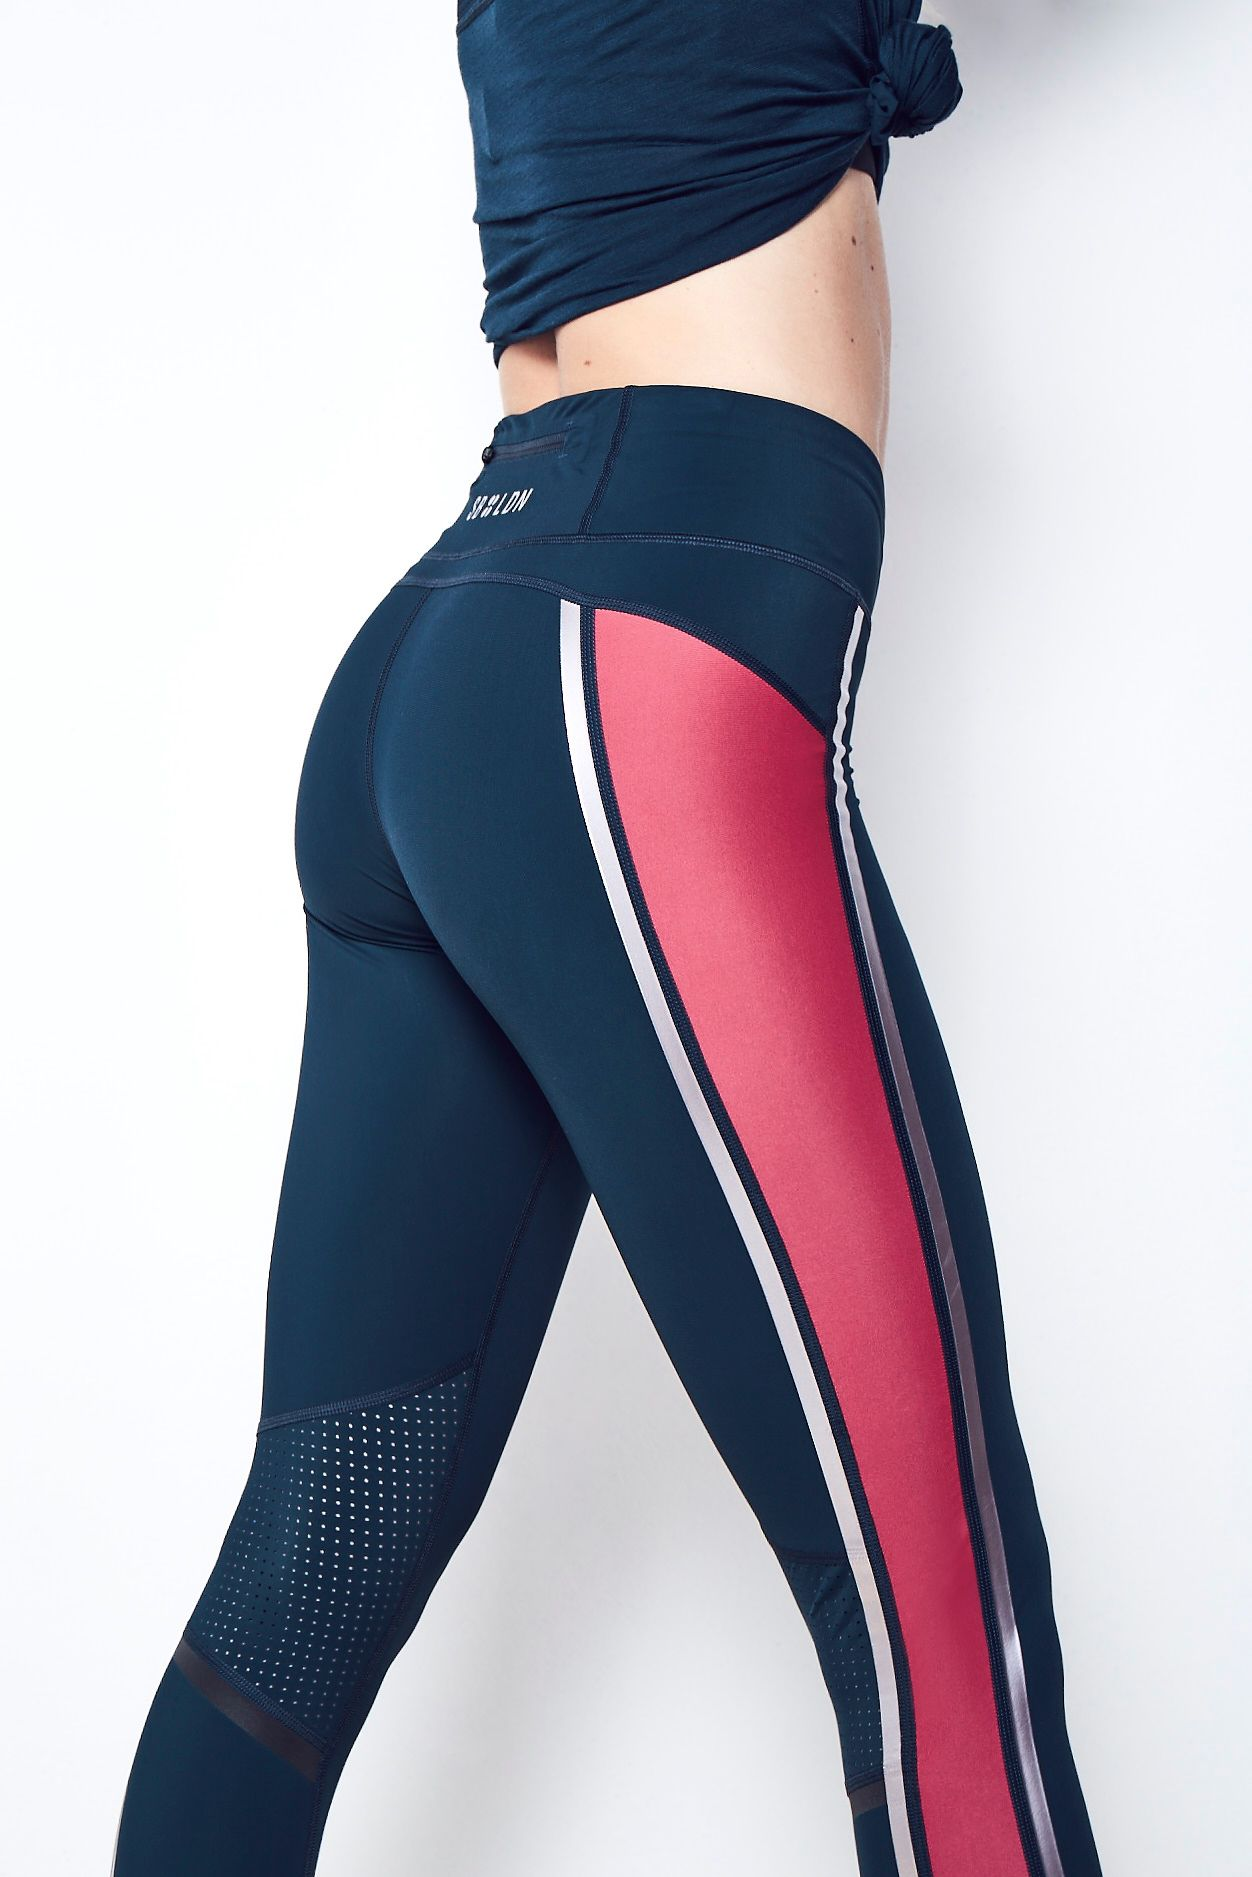 c15c88b2a4 Zero Gravity Run Leggings. Bum-sculpting. You bet your ass. Meet the Zero  Gravity Leggings in colour block with the perfect mix of compression and  stretch ...